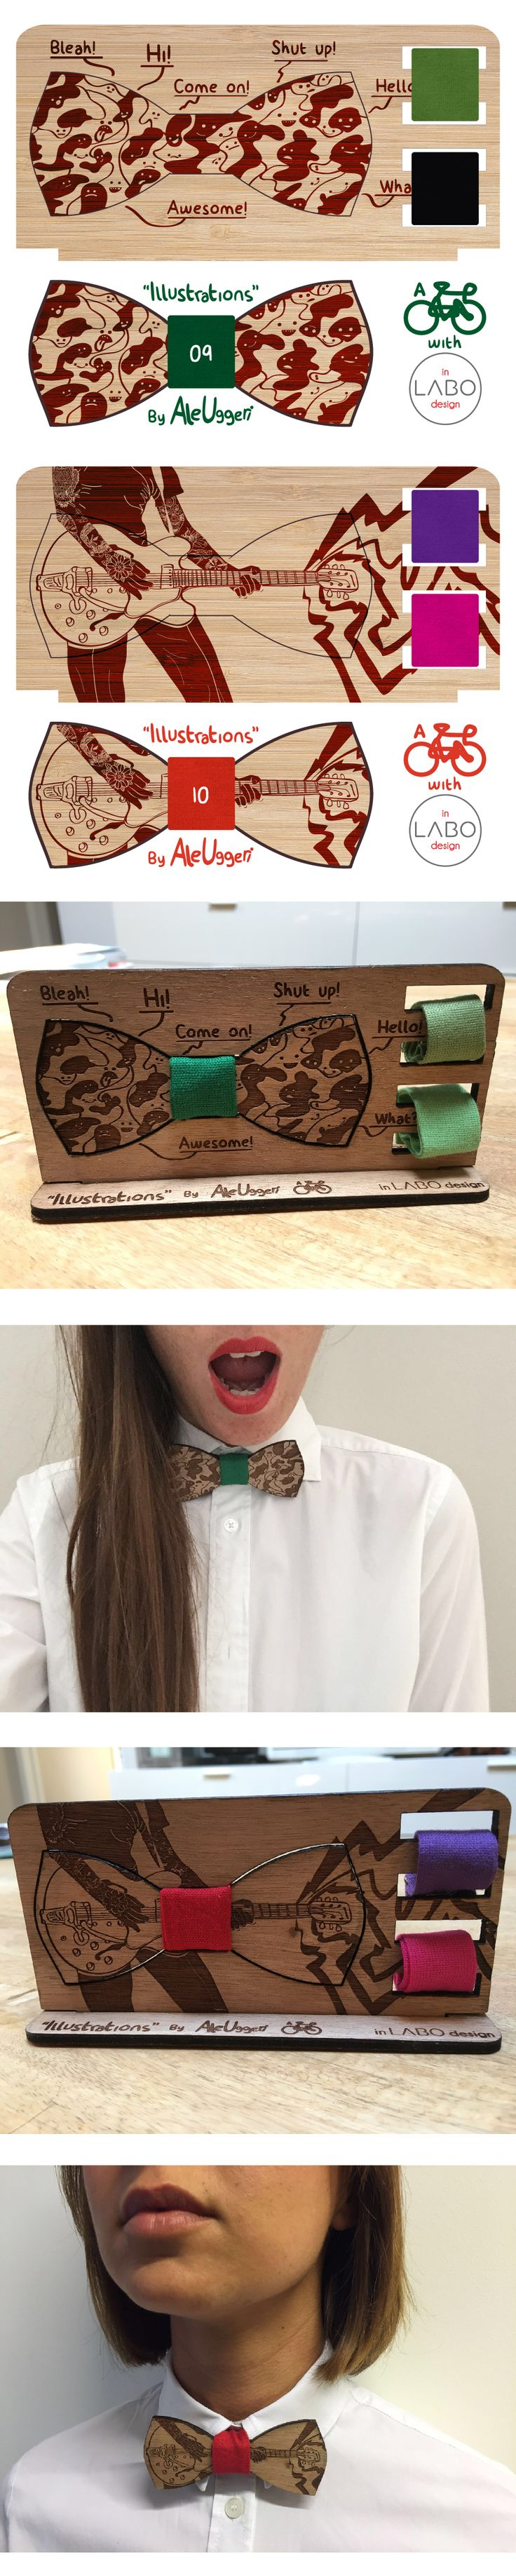 """ILLUSTRATIONS"" by Aleuggeri & InLabodesign  Set of 10 wooden illustrated papillon.  Wooden Bowties #9 #10"